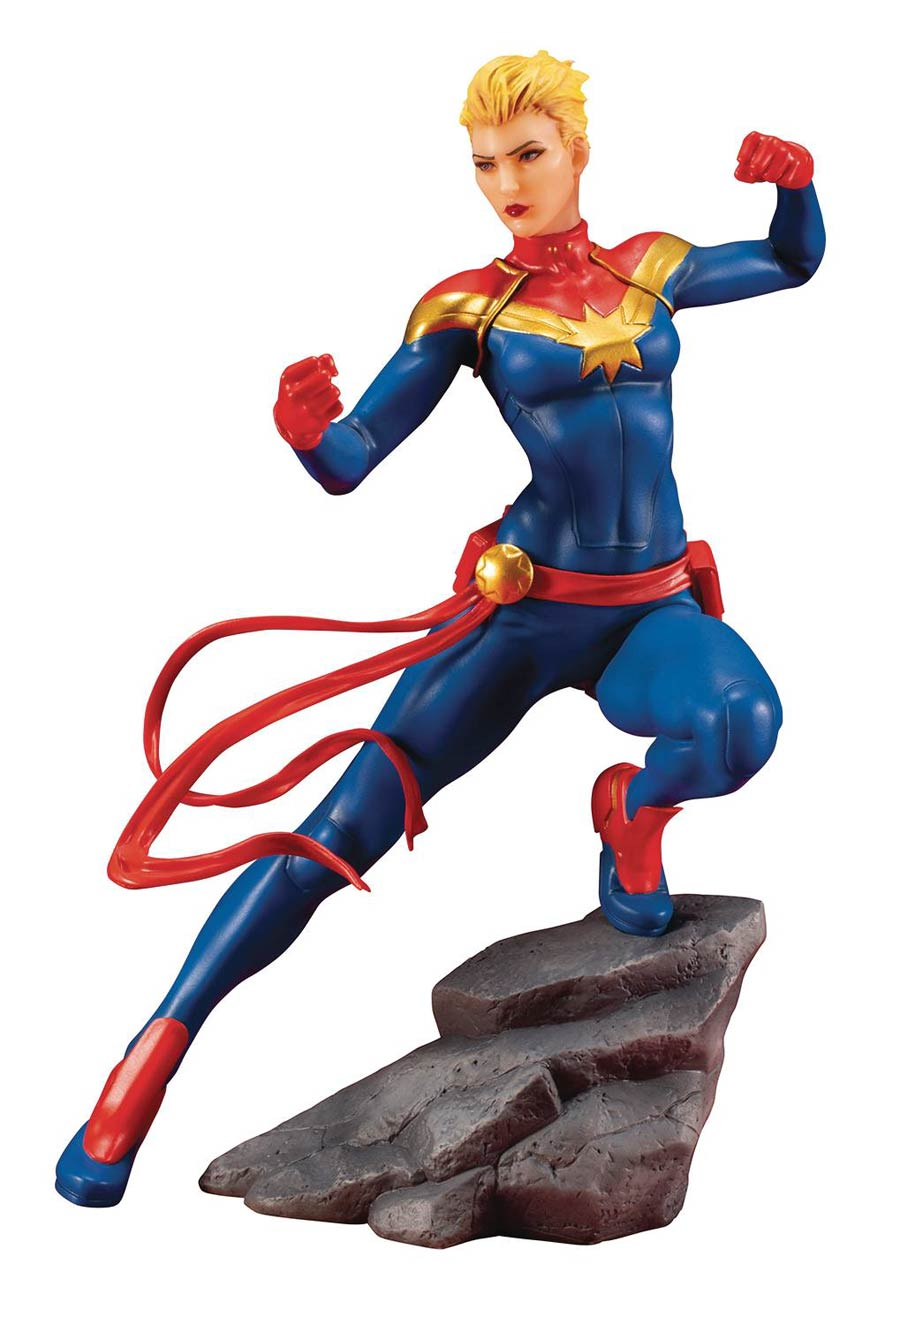 Marvel Comics Avengers Series Captain Marvel ARTFX Plus Statue